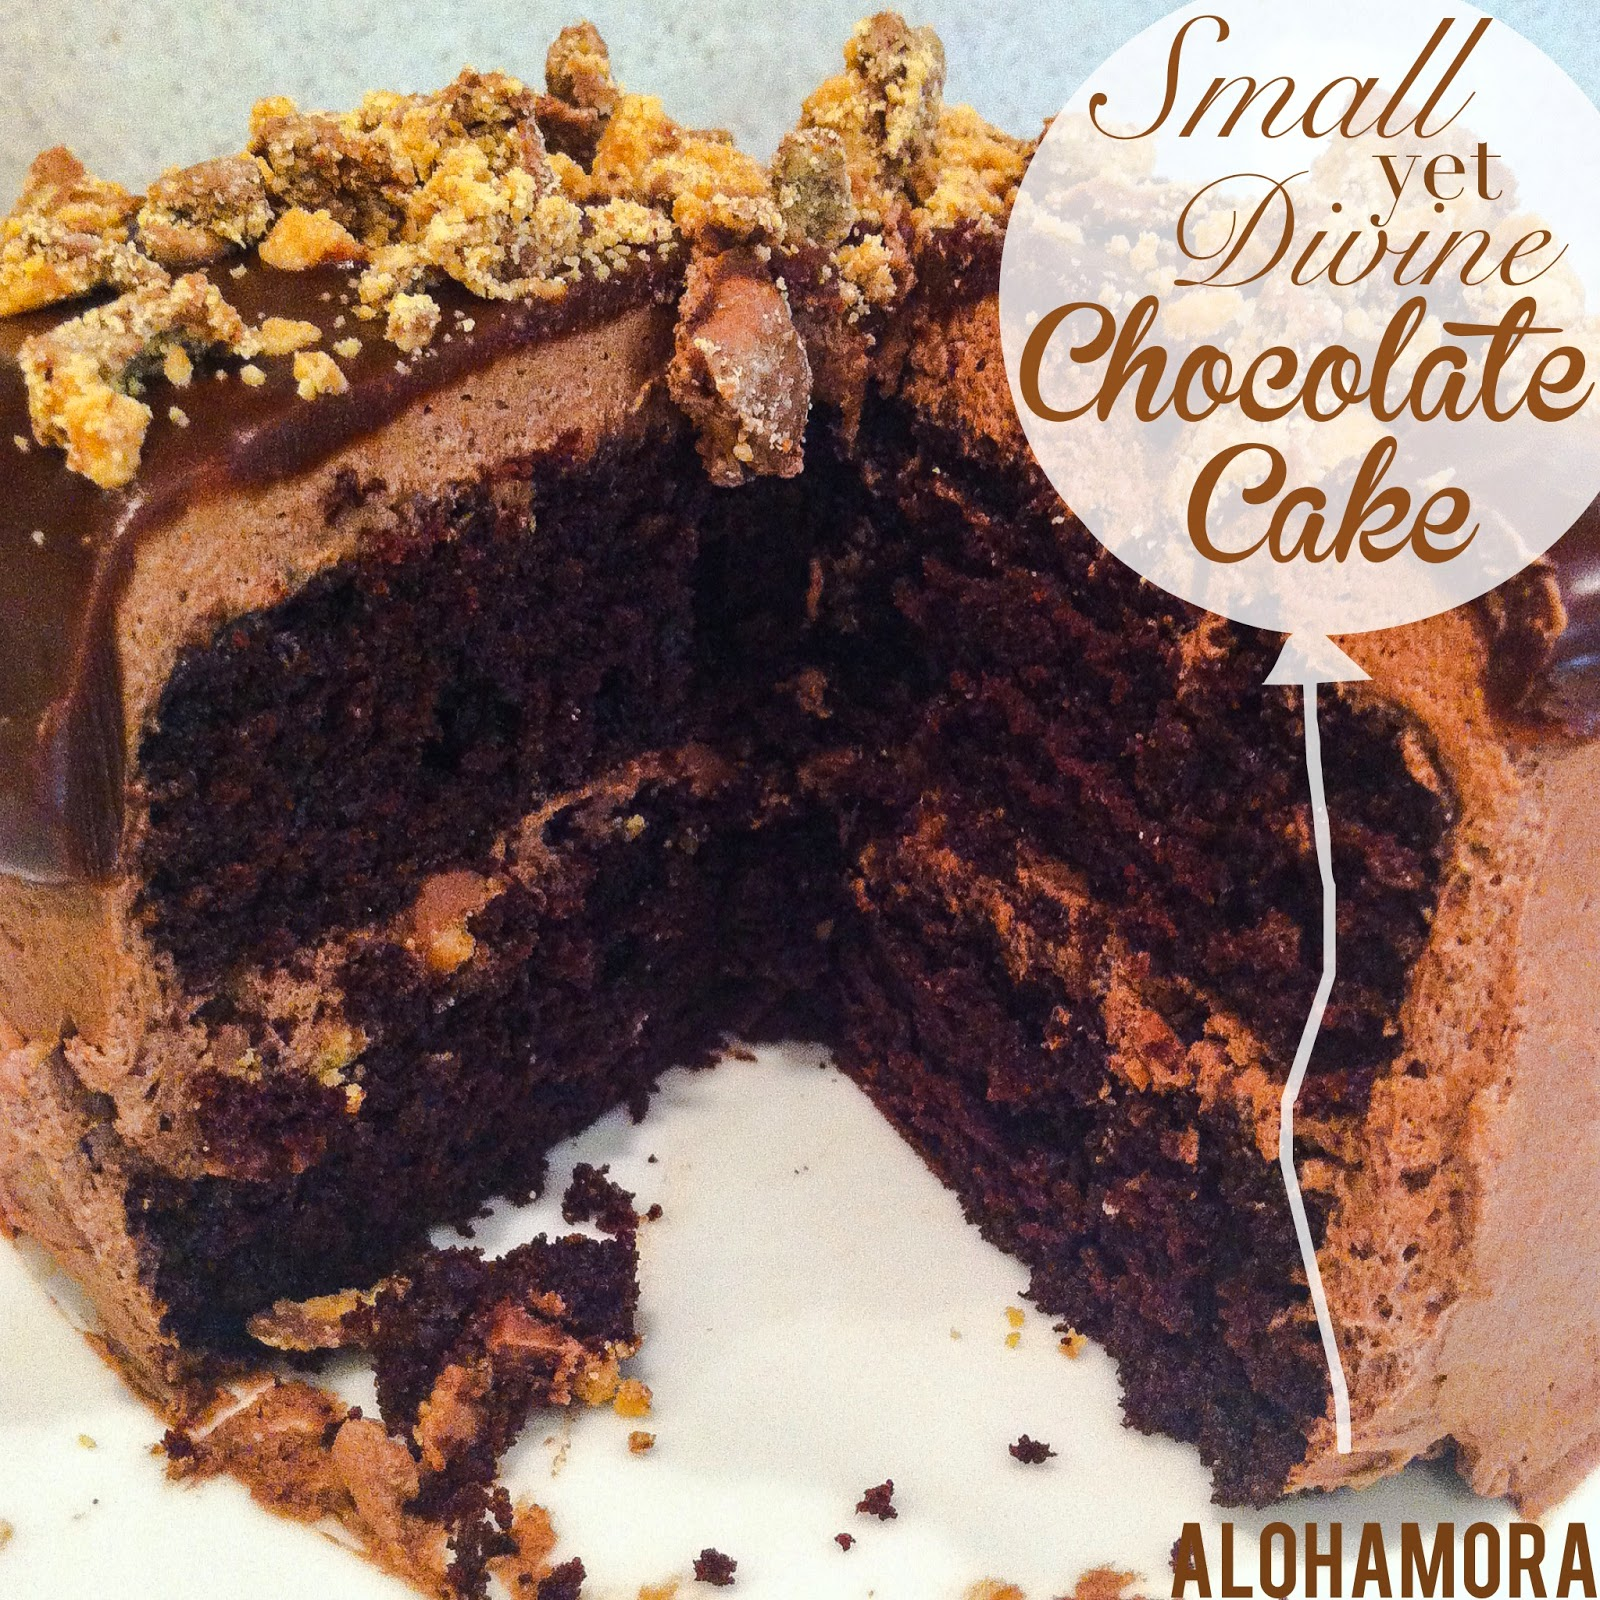 Small in size, but large in chocolate flavor goodness. This Chocolate Cake with a light Chocolate Whipped Cream Frosting Topped with a Chocolate Peanut Butter Ganache is pretty much amazing.  The small size is perfect for a small family. Alohamora Open a Book http://alohamoraopenabook.blogspot.com/